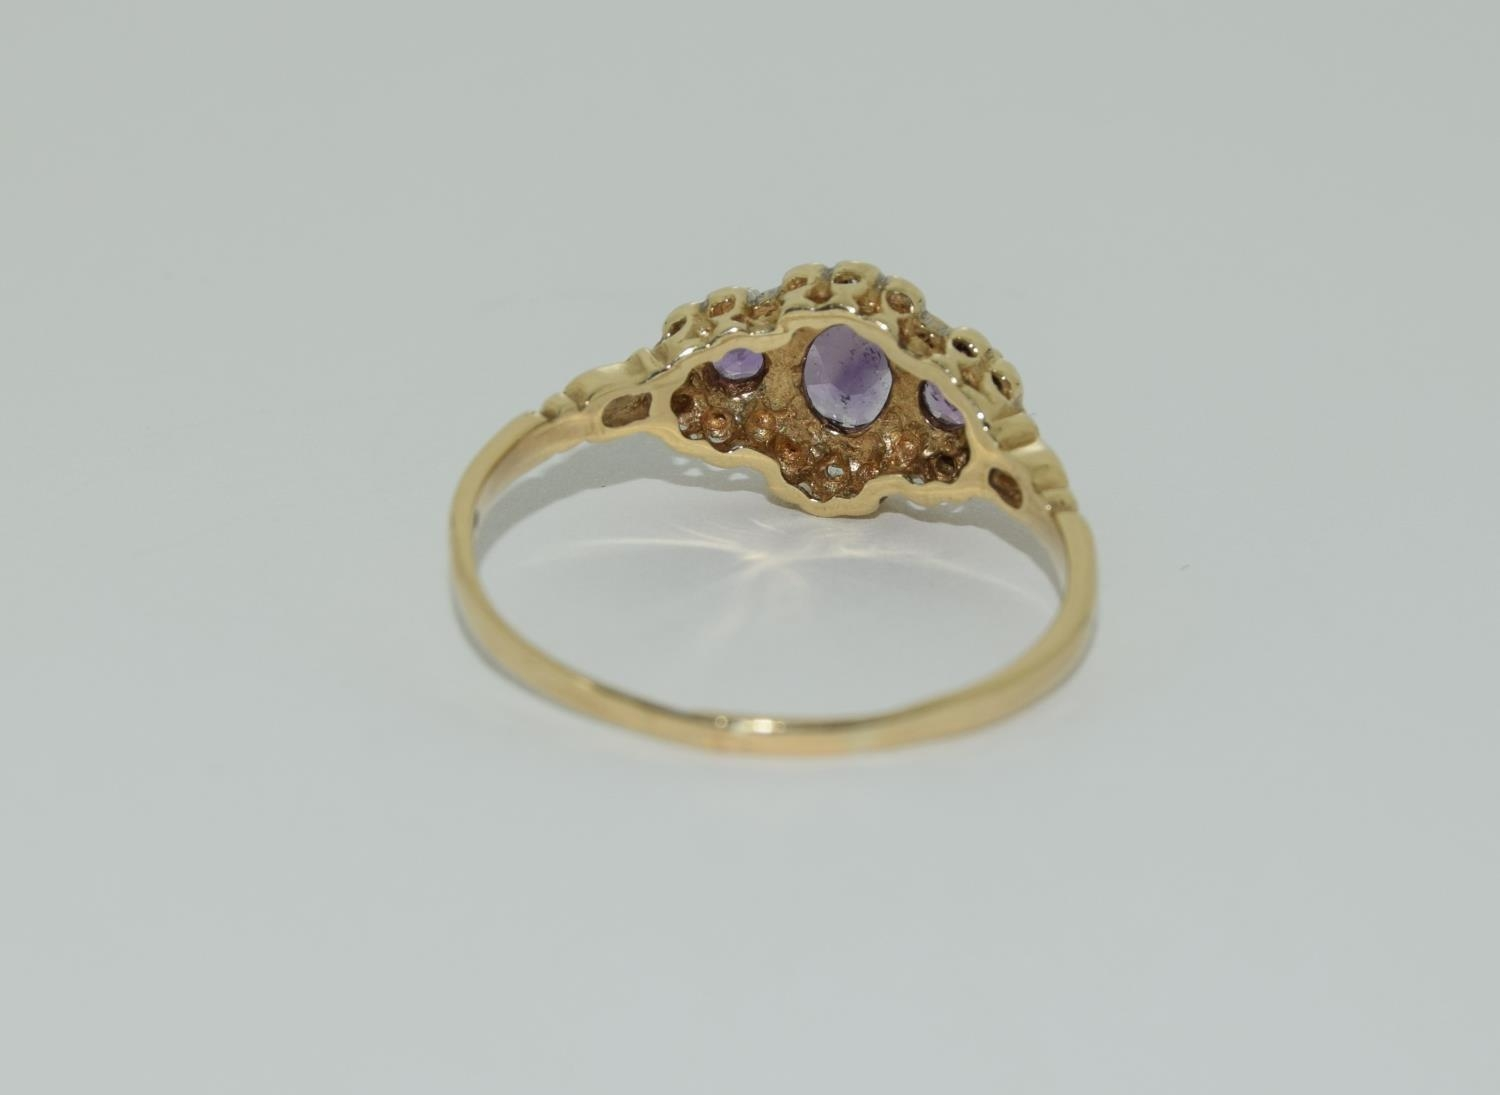 Vintage 9ct gold amethyst and diamond ring. 1.9grams, size R. - Image 3 of 6